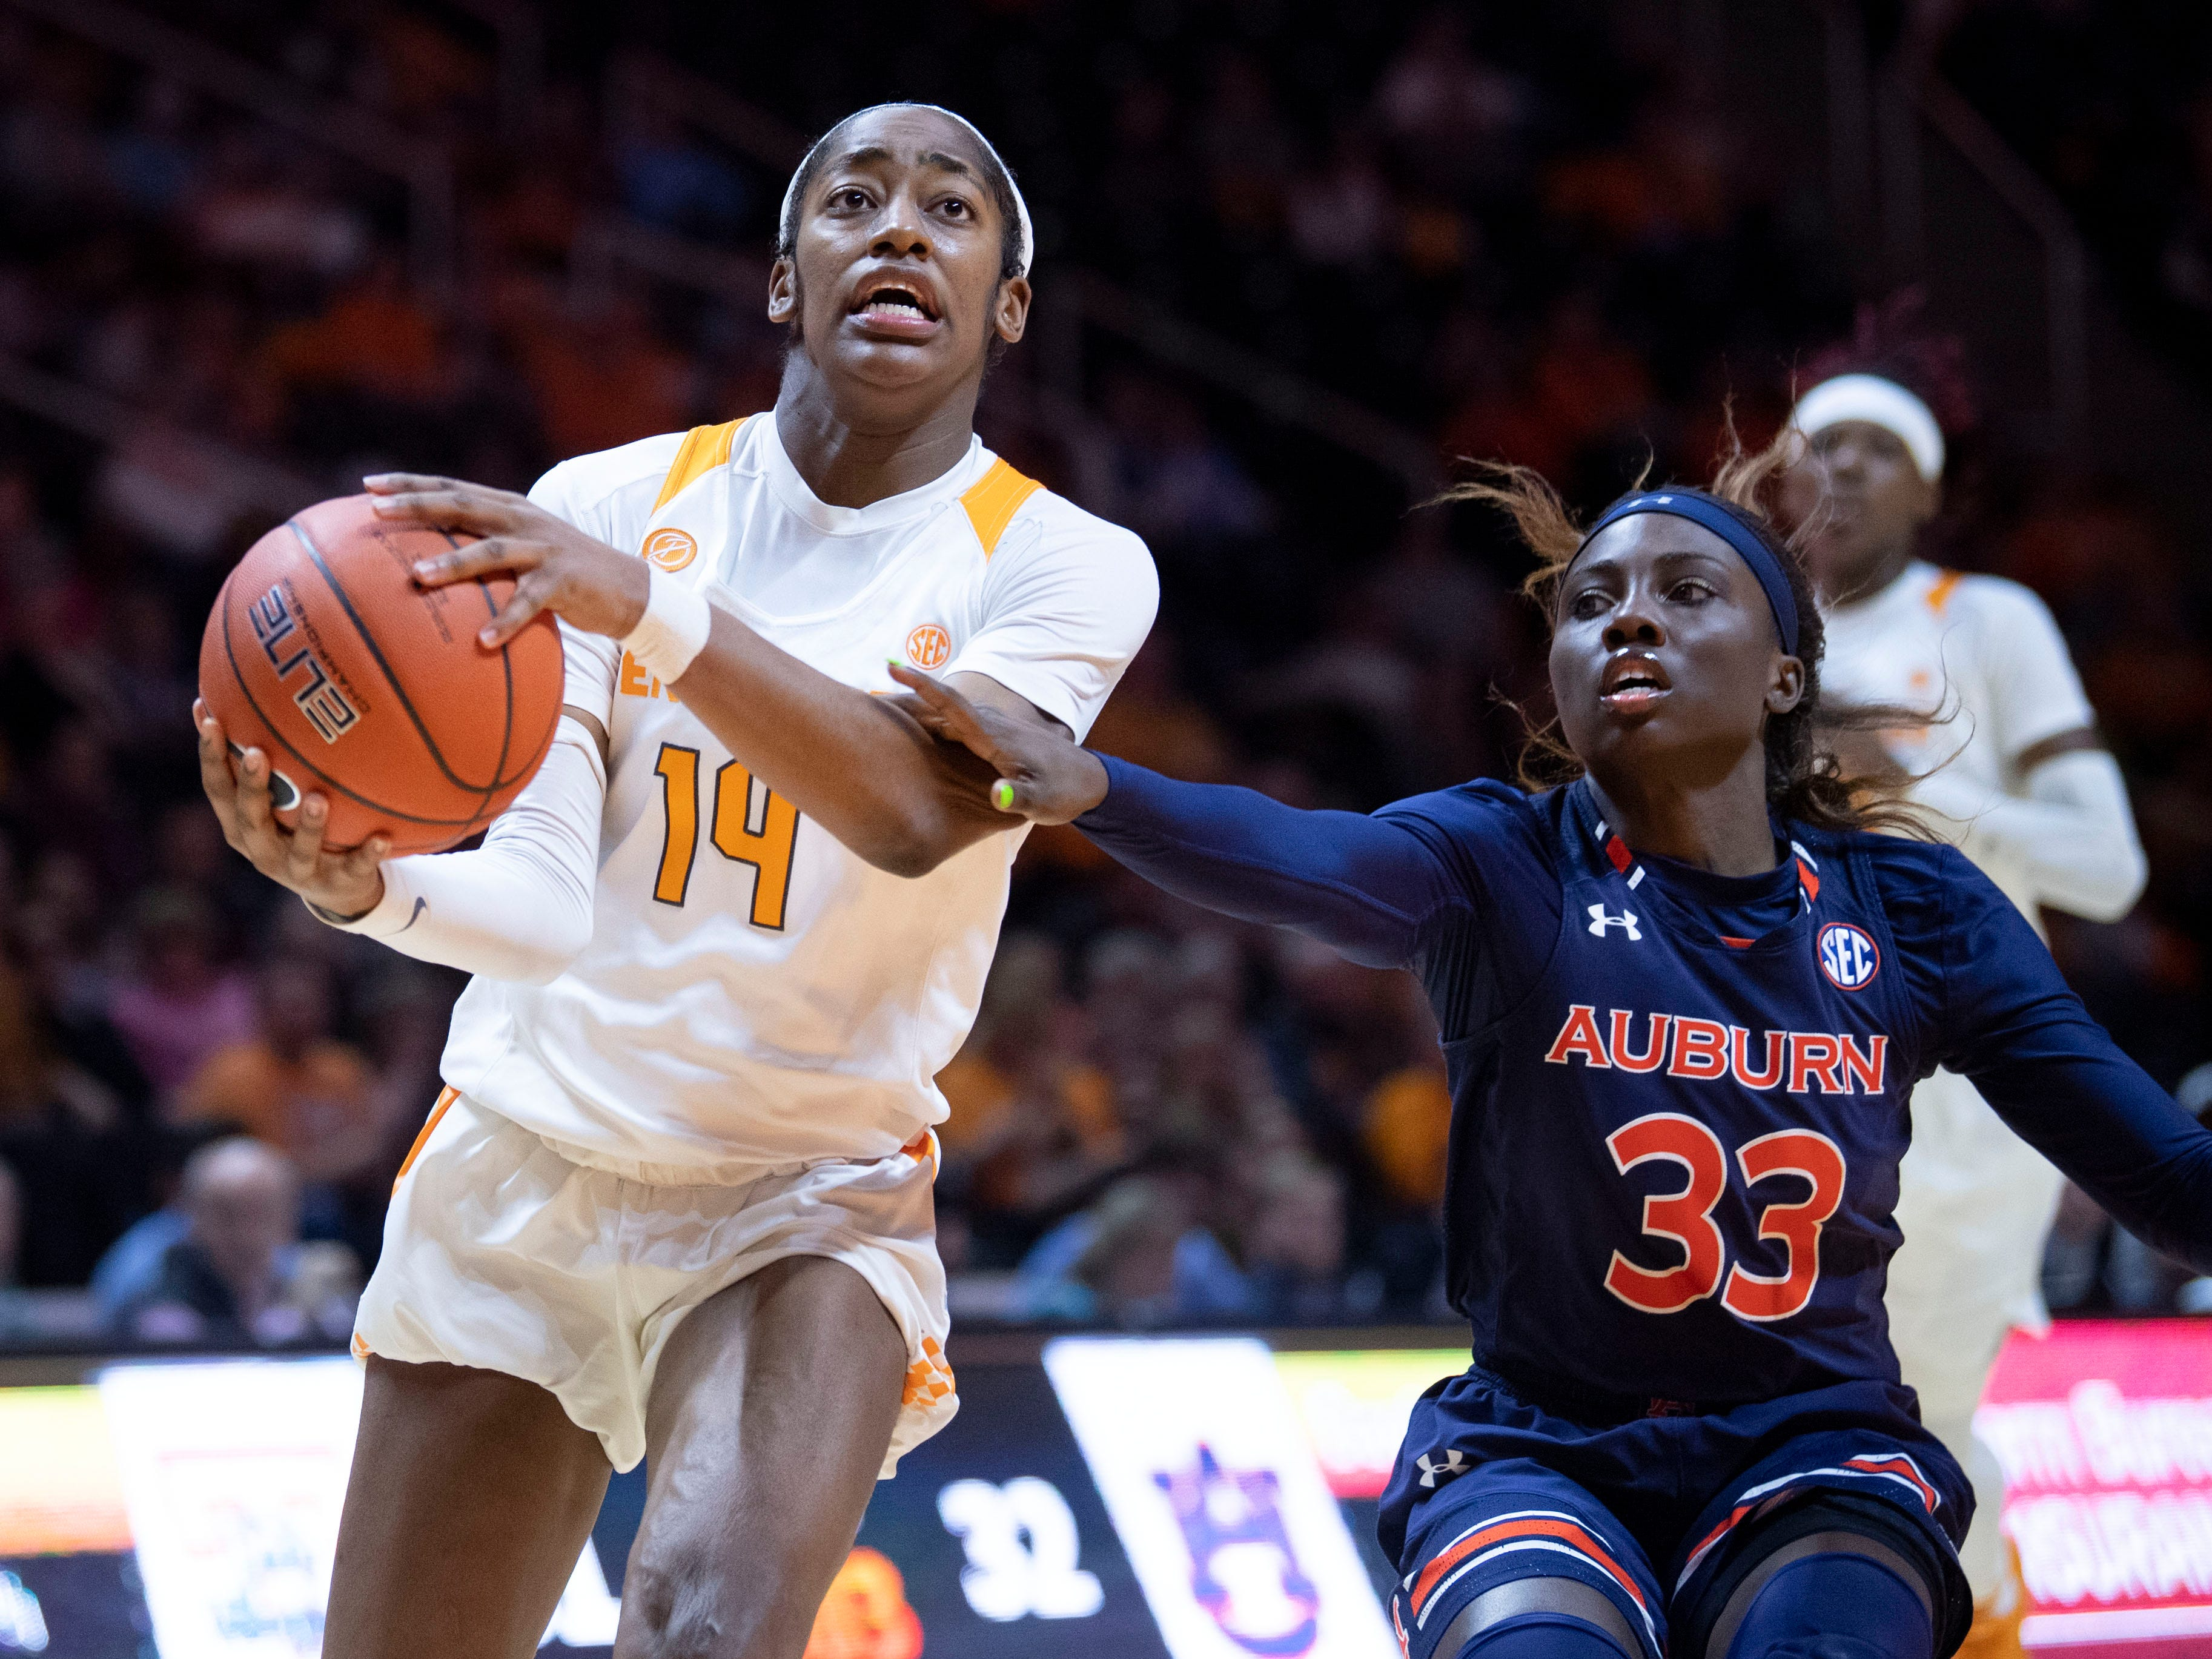 Tennessee's Zaay Green (14) drives towards the basket while guarded by Auburn's Janiah McKay (33) on Thursday, February 14, 2019.